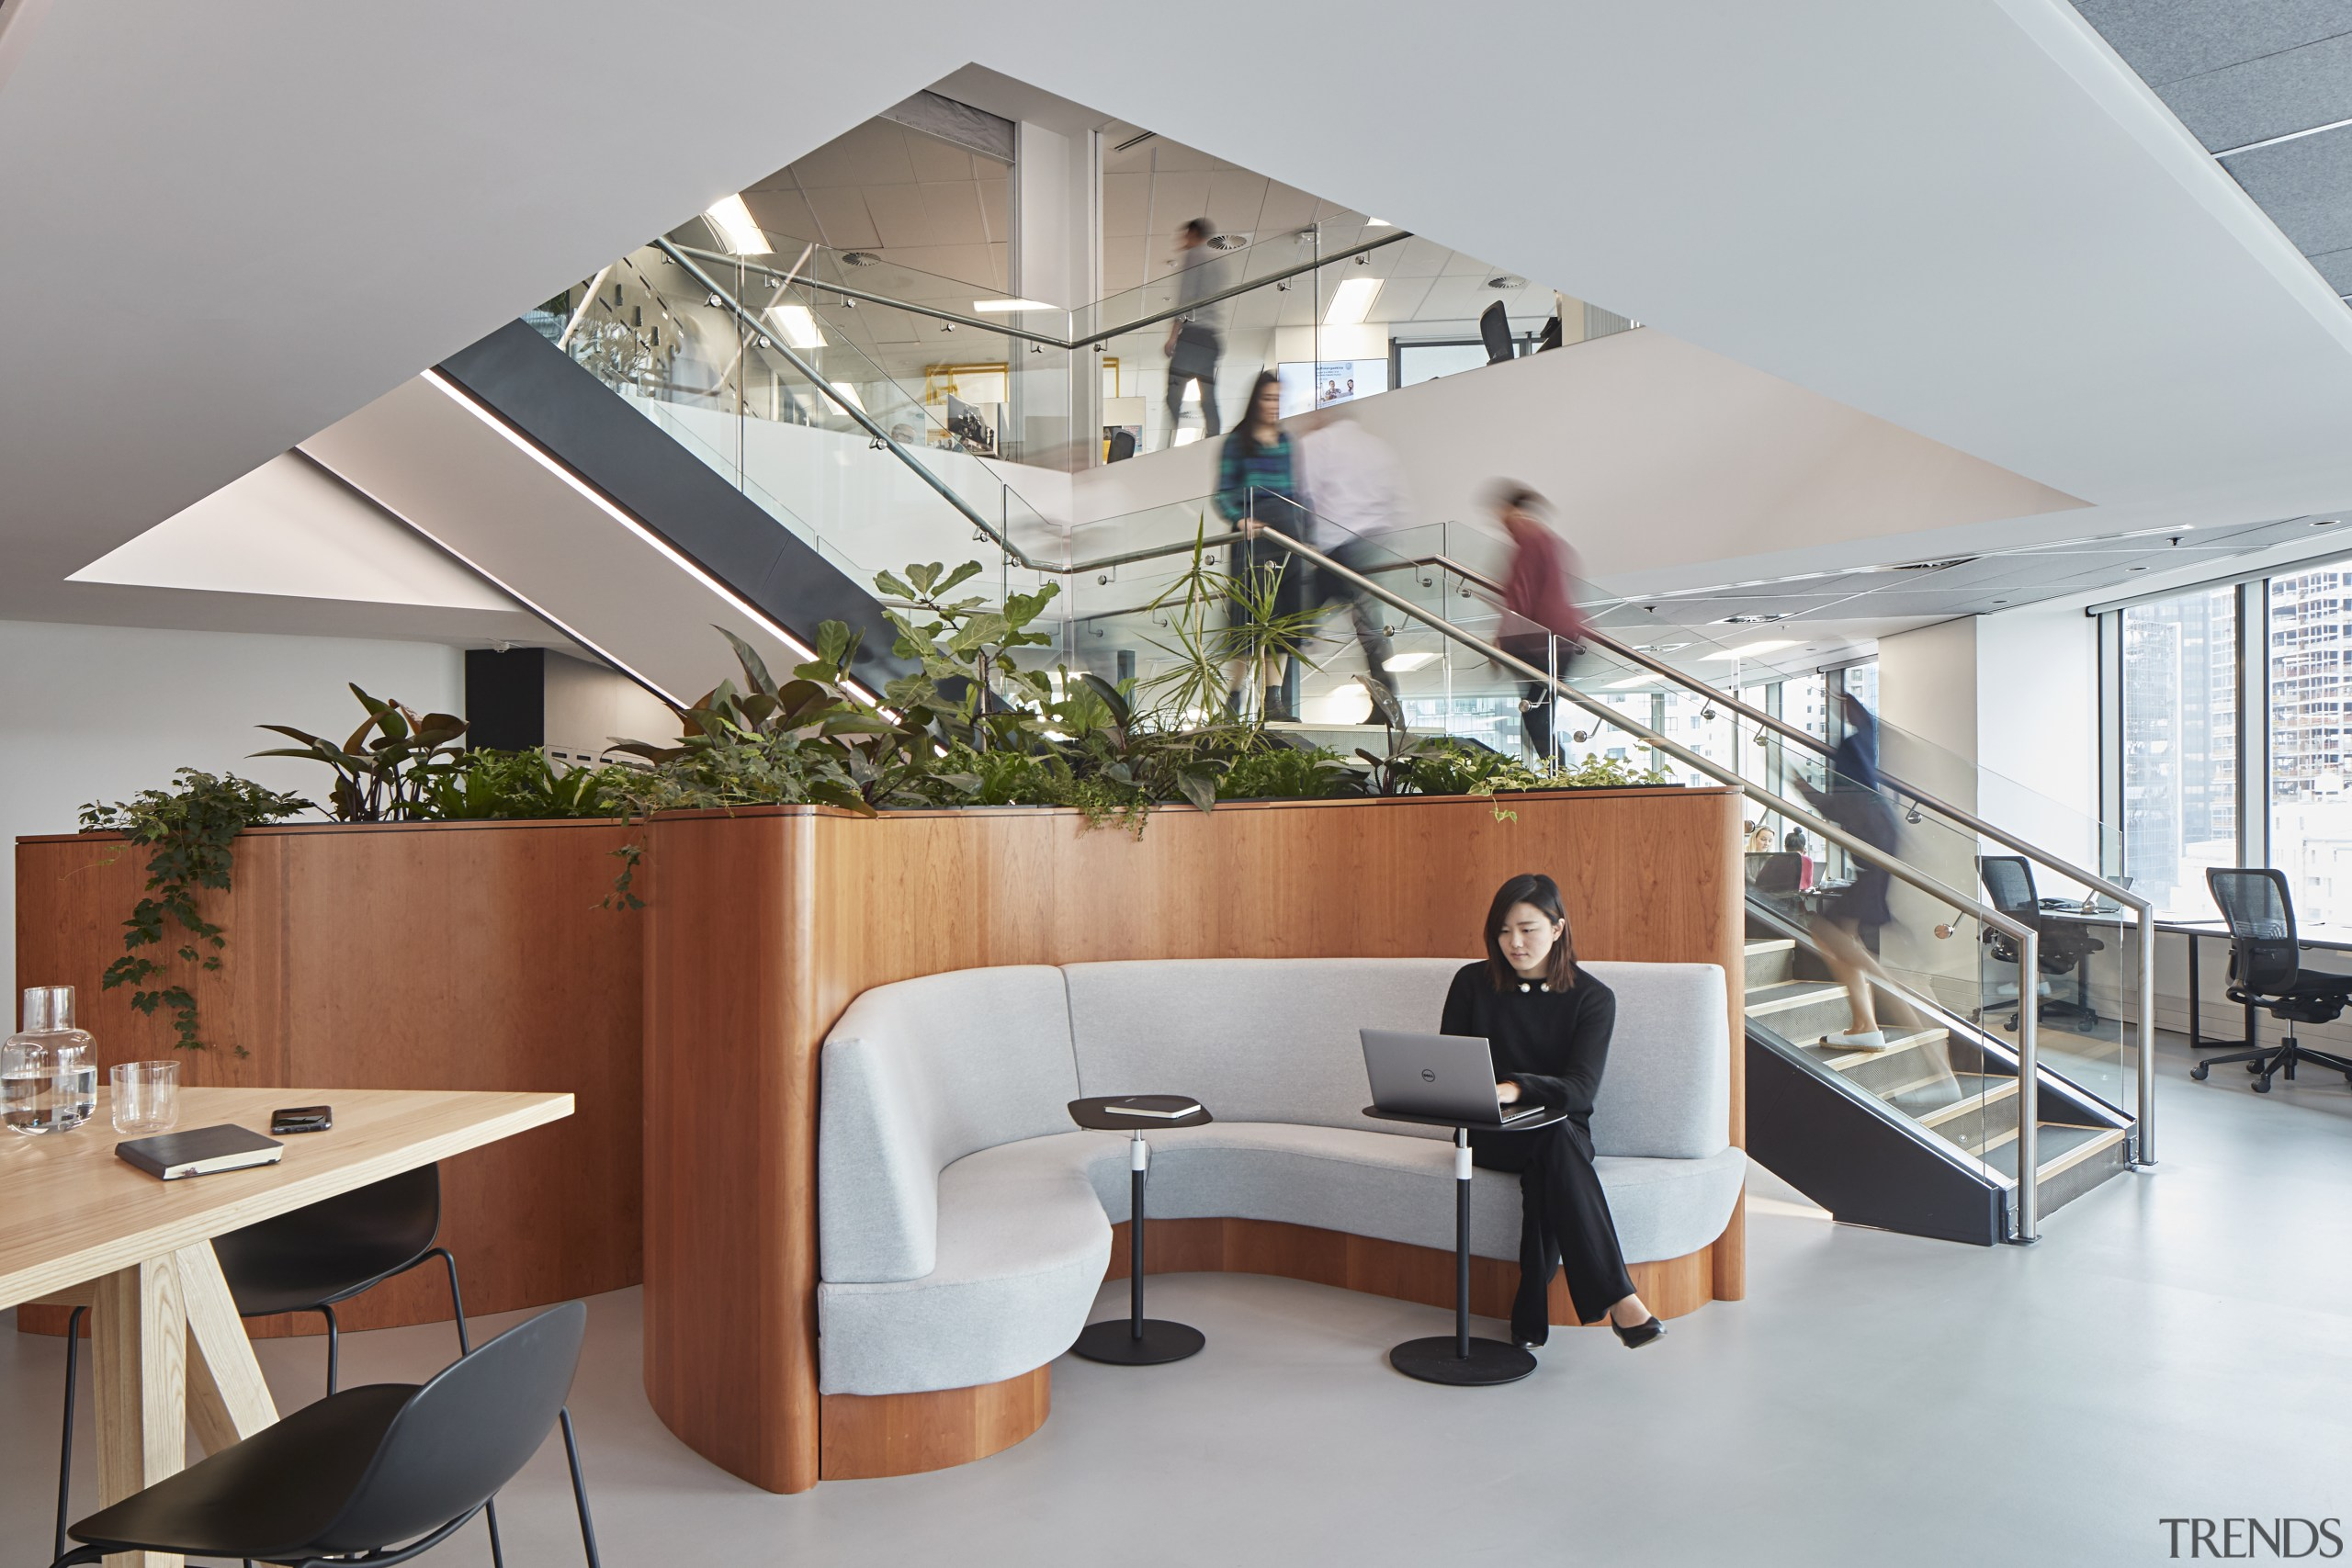 The central staircase was a major engineering and architecture, furniture, interior design, office, gray